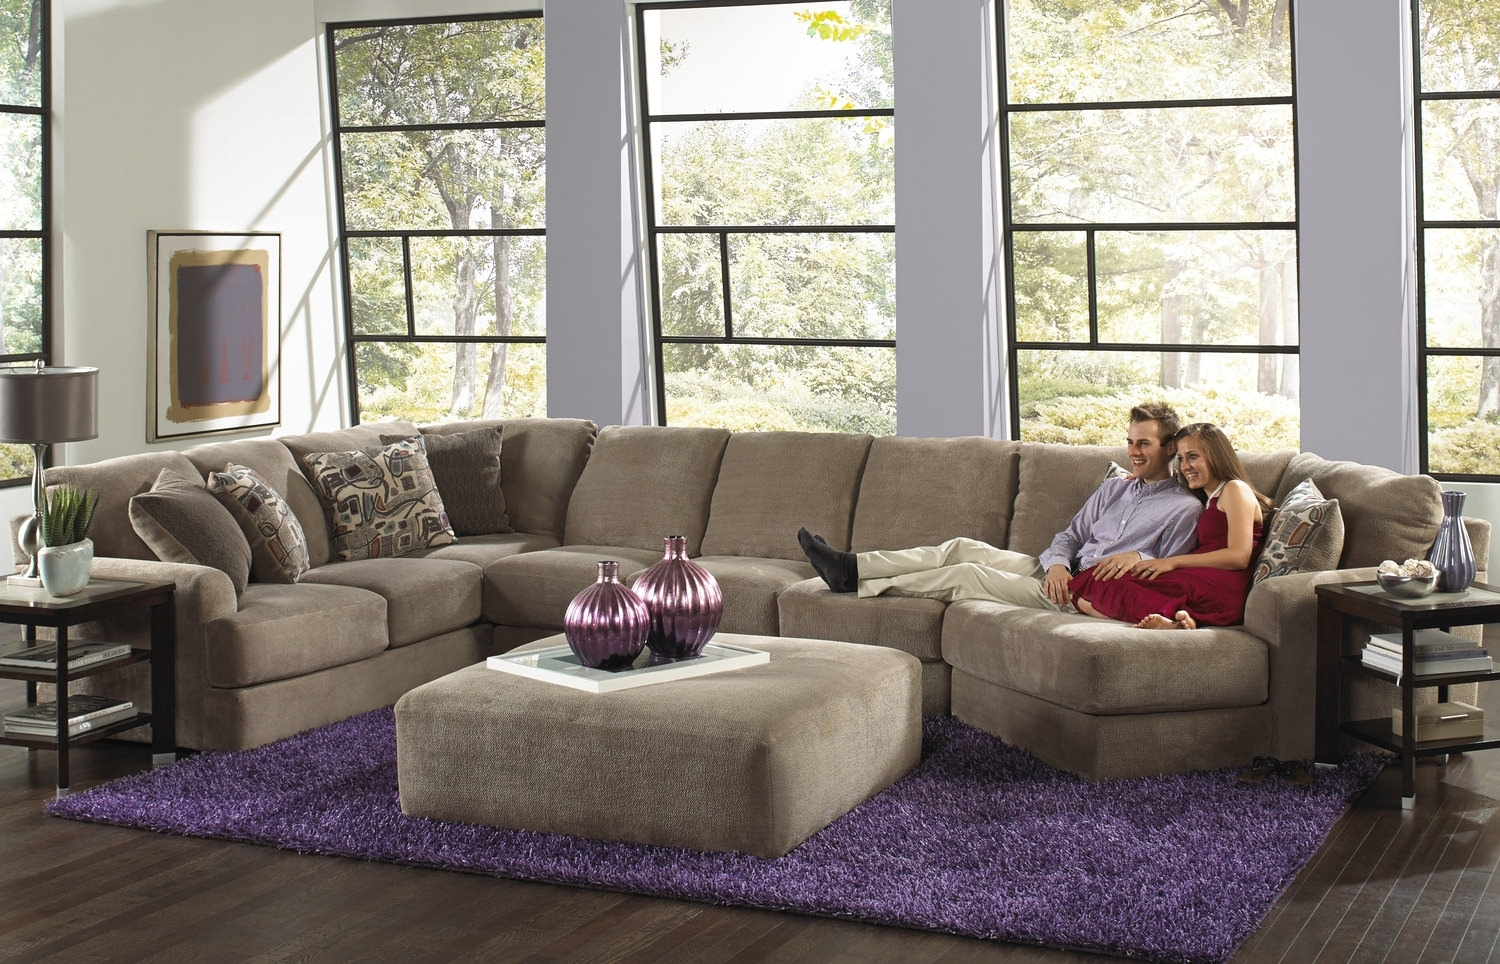 Regal 3 Piece Modular Sectional | Hom Furniture With Jackson 6 Piece Power Reclining Sectionals (View 18 of 25)